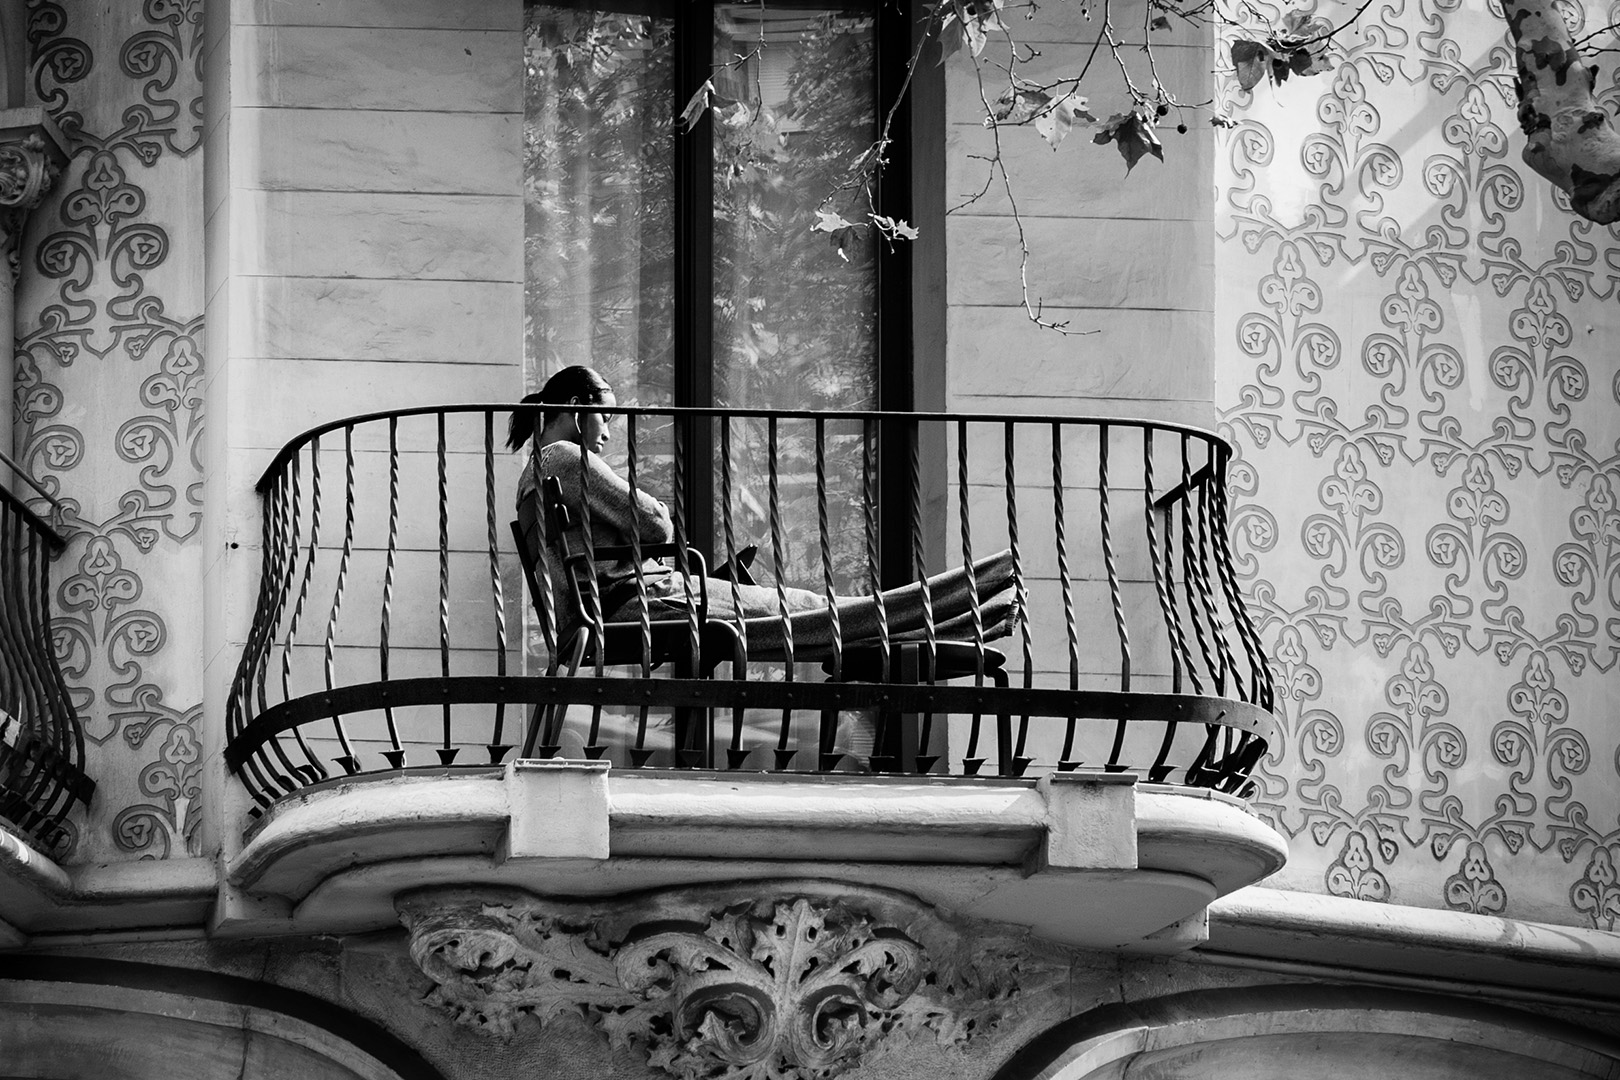 Woman sitting on the Balcony, Barcelona, Spain 2014